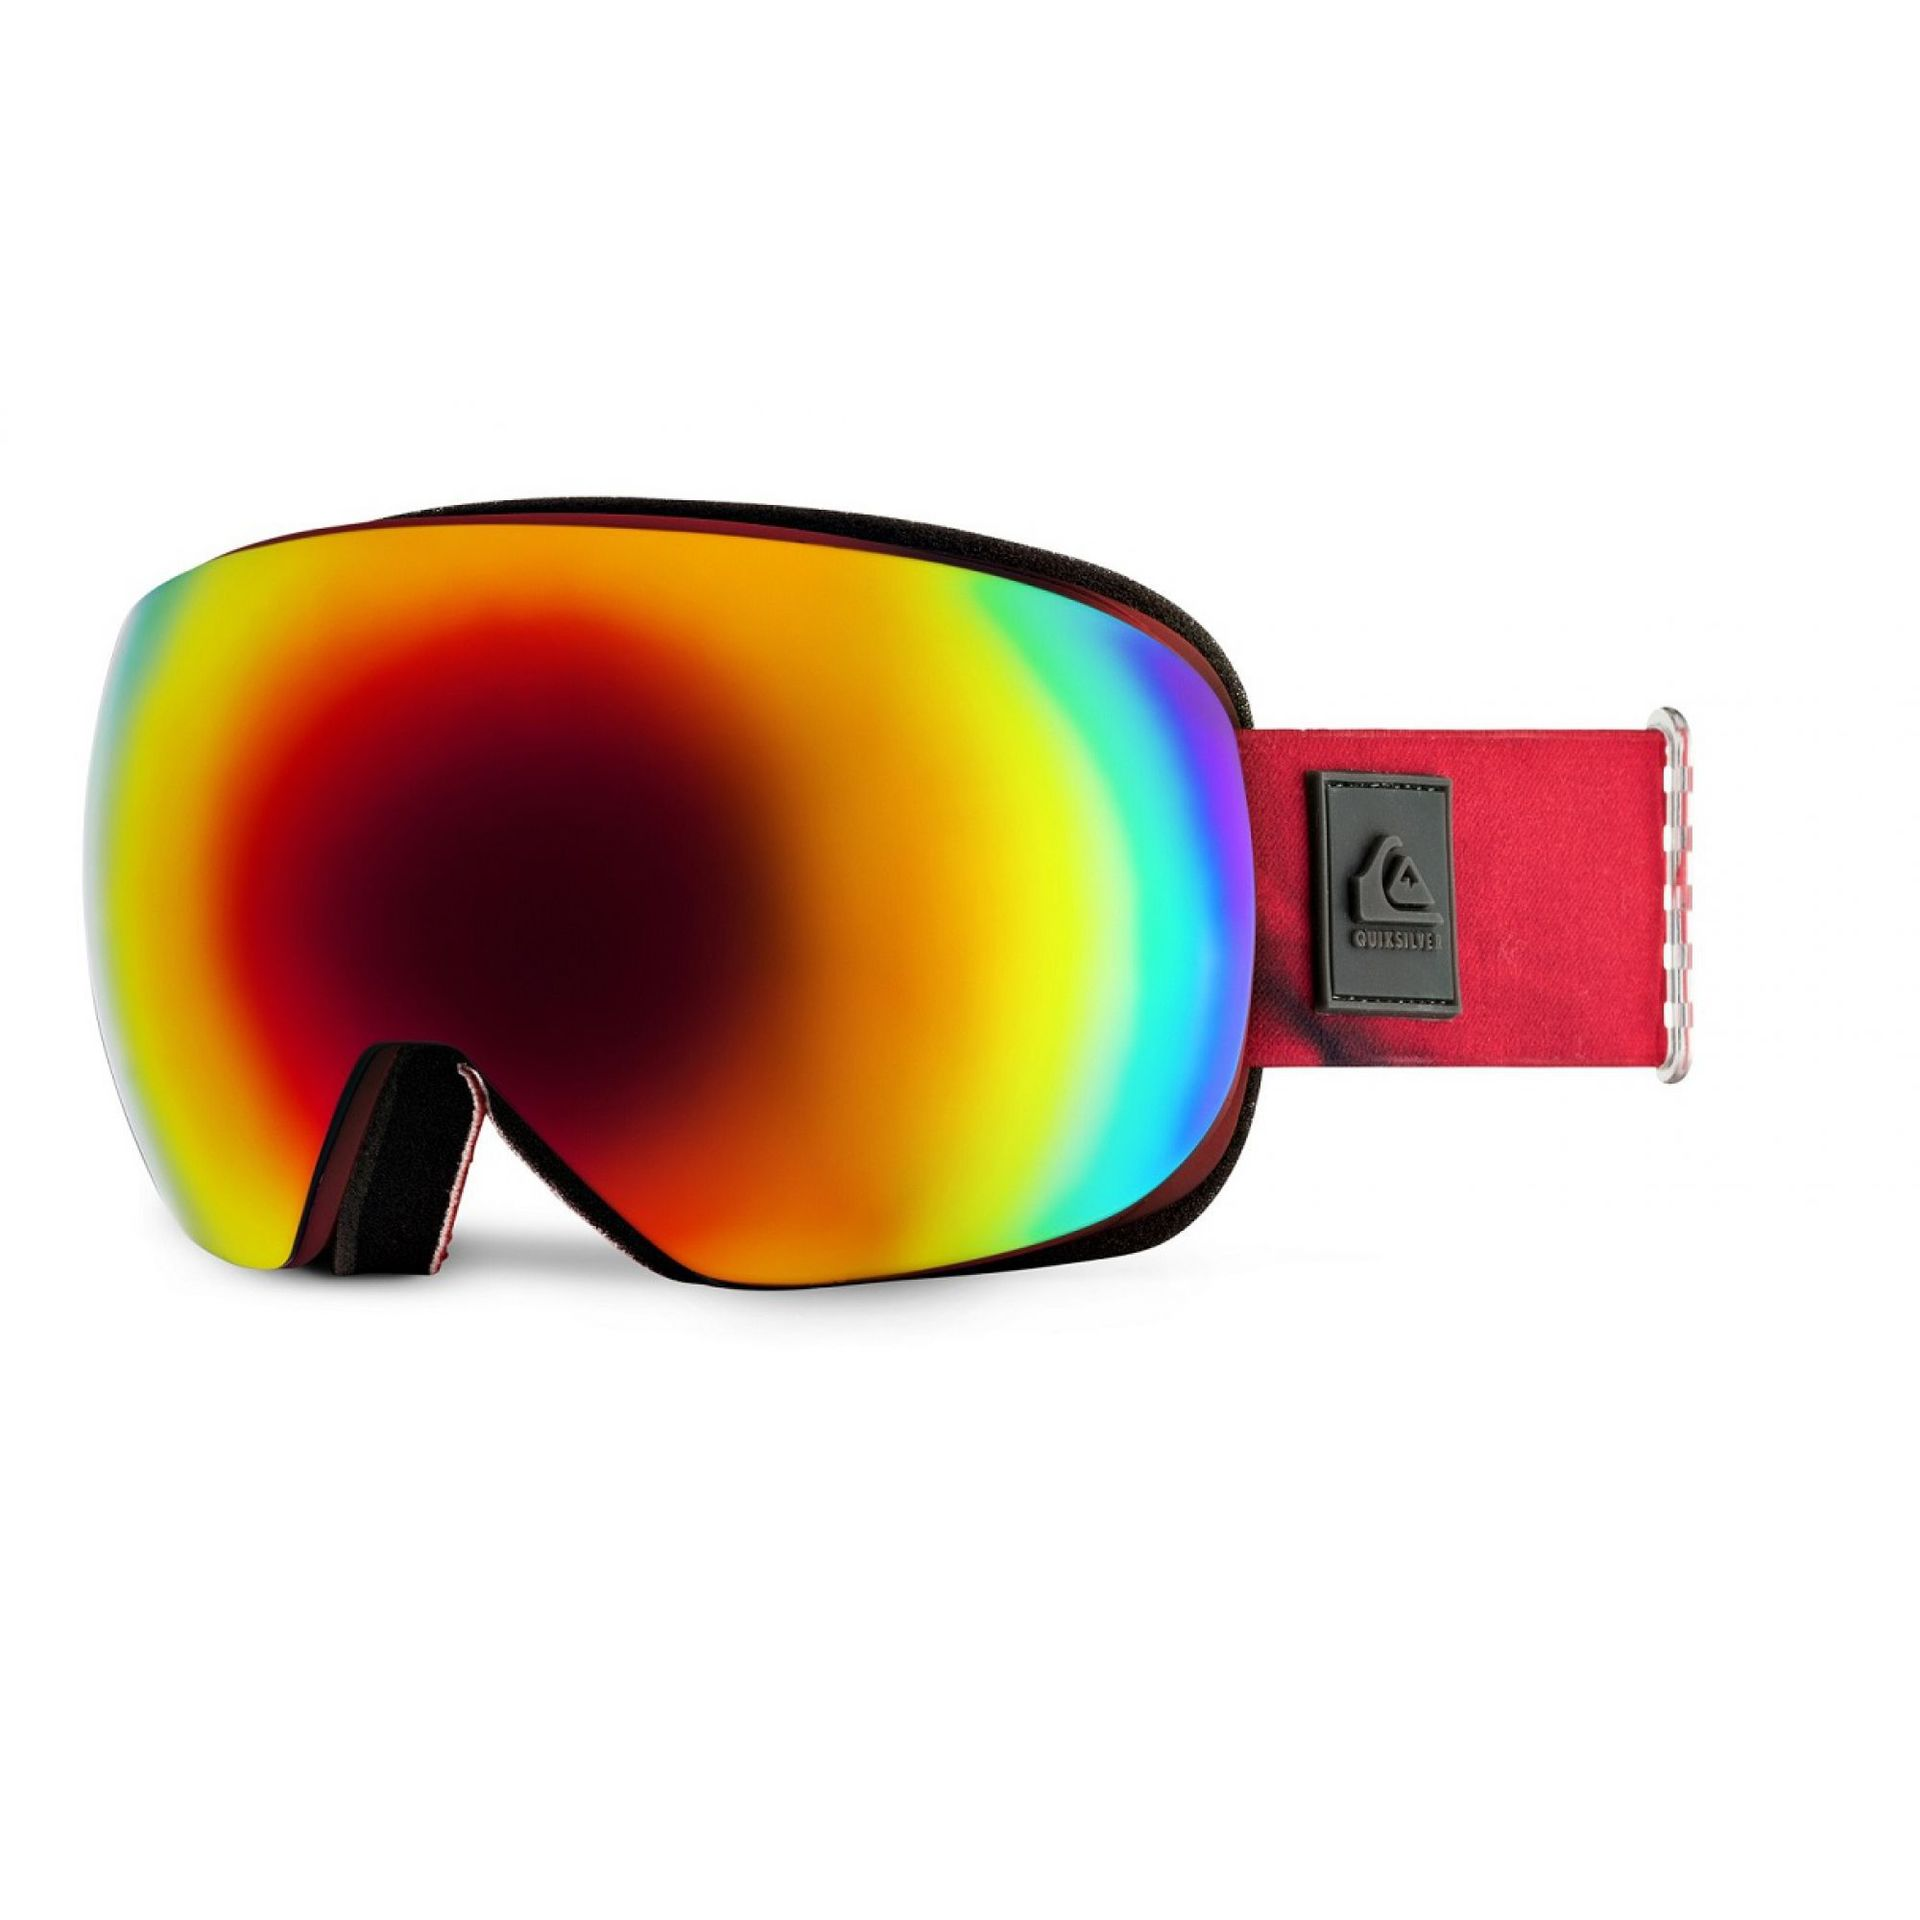 GOGLE QUIKSILVER QS-R HIGHDYE RED||AMBER ROSE ML FIRE RED